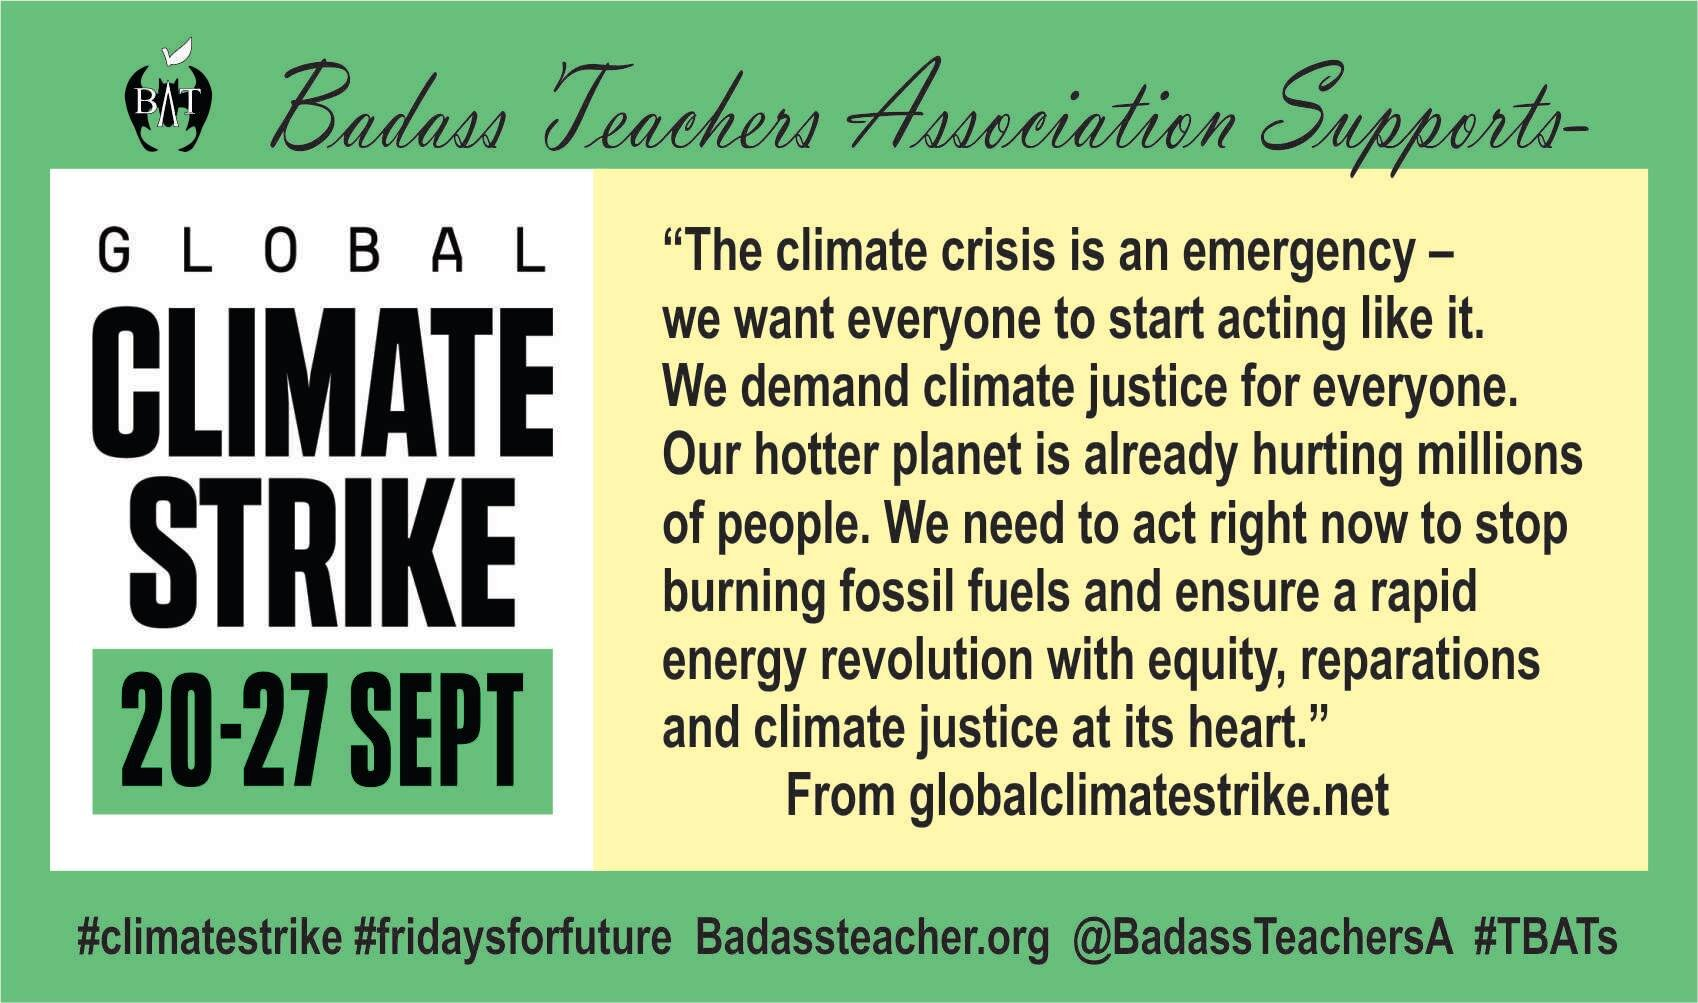 ***The Badass Teachers Association Board of Directors officially supports the Global Climate Strike!***  Do you have students in your district that will be participating? Are you planning on attending a local event? Are you incorporating Climate Justice into your lesson planning?  There are different levels at which we can all get involved - the most important thing is to GET INVOLVED!   Climate Strike   Join in on social media by using the hashtags  #climatestrike  and  #climatestrikingeducators    Sign for your support   Amnesty chief  urges  schools to let students participate in climate strike NYC  plans to excuse students  that participate in the Climate Strike   Students across Oregon  plan on participating:   Climate Strike toolkit for workers    Resources:    Portland resolution  to develop an implementation plan for Climate Literacy:   Teaching Tolerance   What is Environmental Justice   Analyzing Environmental Justice     NEA list of resources  to teach climate literacy   Zinn Education Project -  Teach Climate Justice Campaign     Duke Environmental Justice Workshop  K-12 Lesson Plans